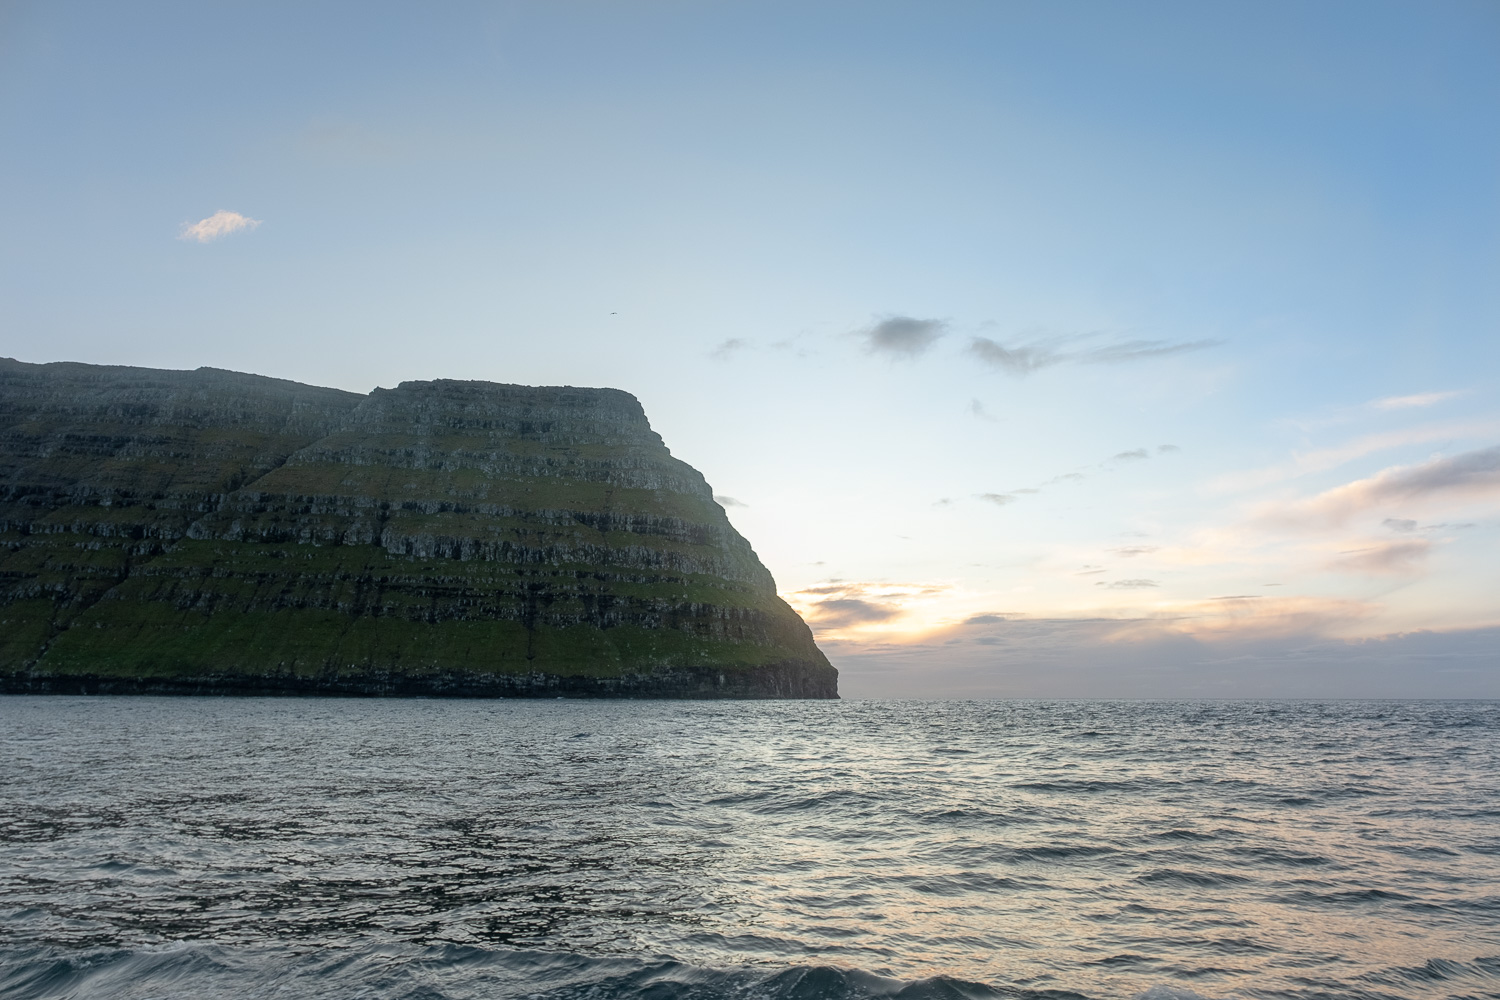 Clearing the headland to leave the Faroes